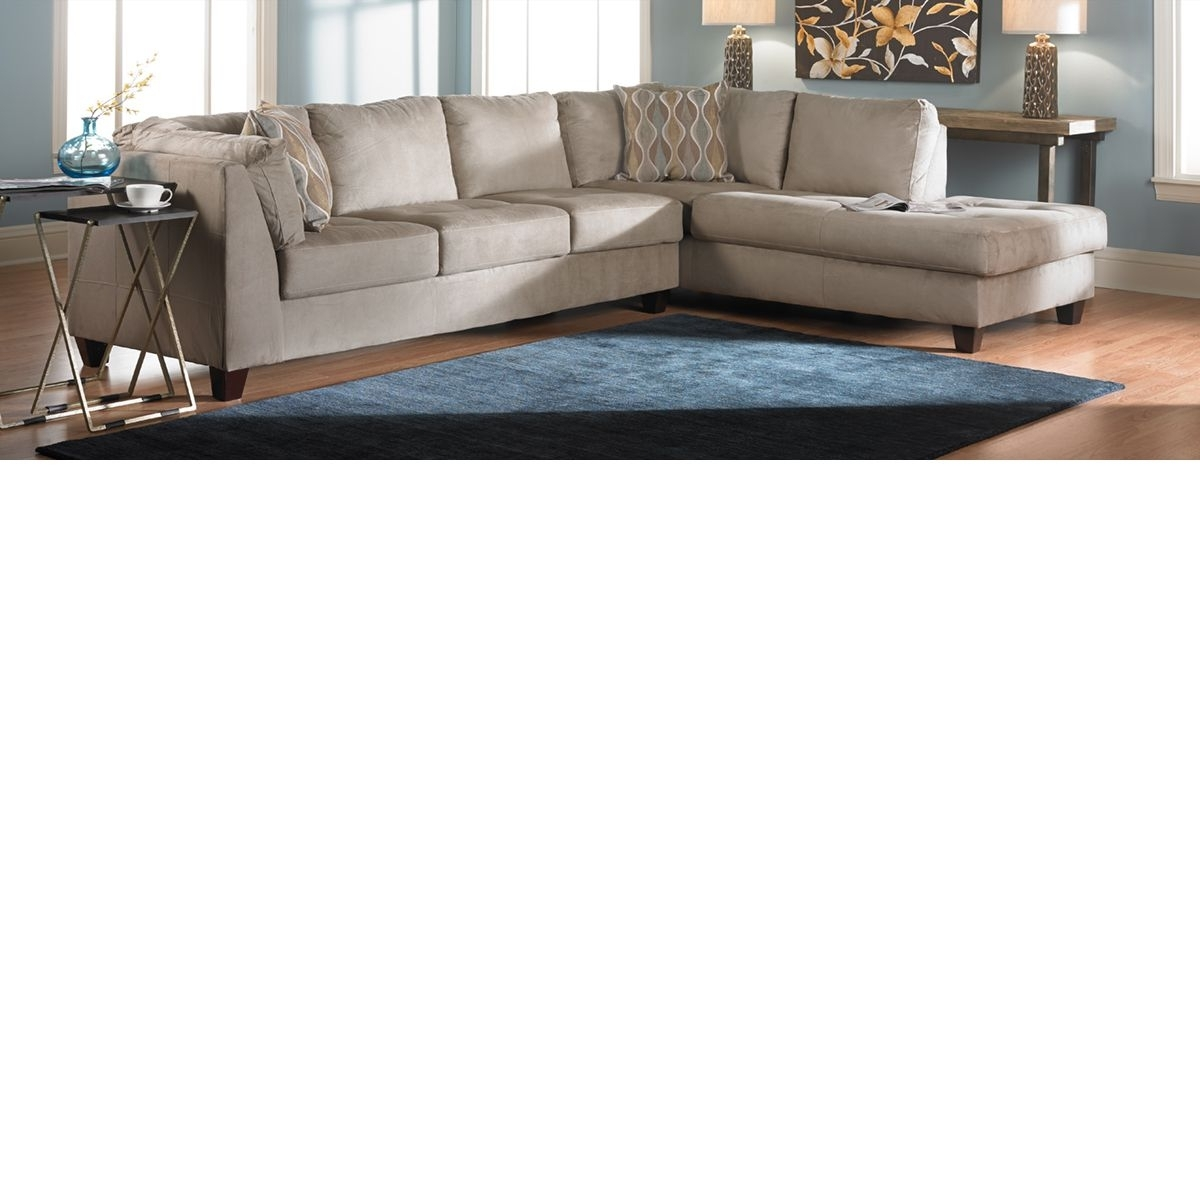 Stunning The Dump Furniture Sectional Sofa For Home Pic Haynes In 2018 Virginia Beach Sectional Sofas (View 16 of 20)